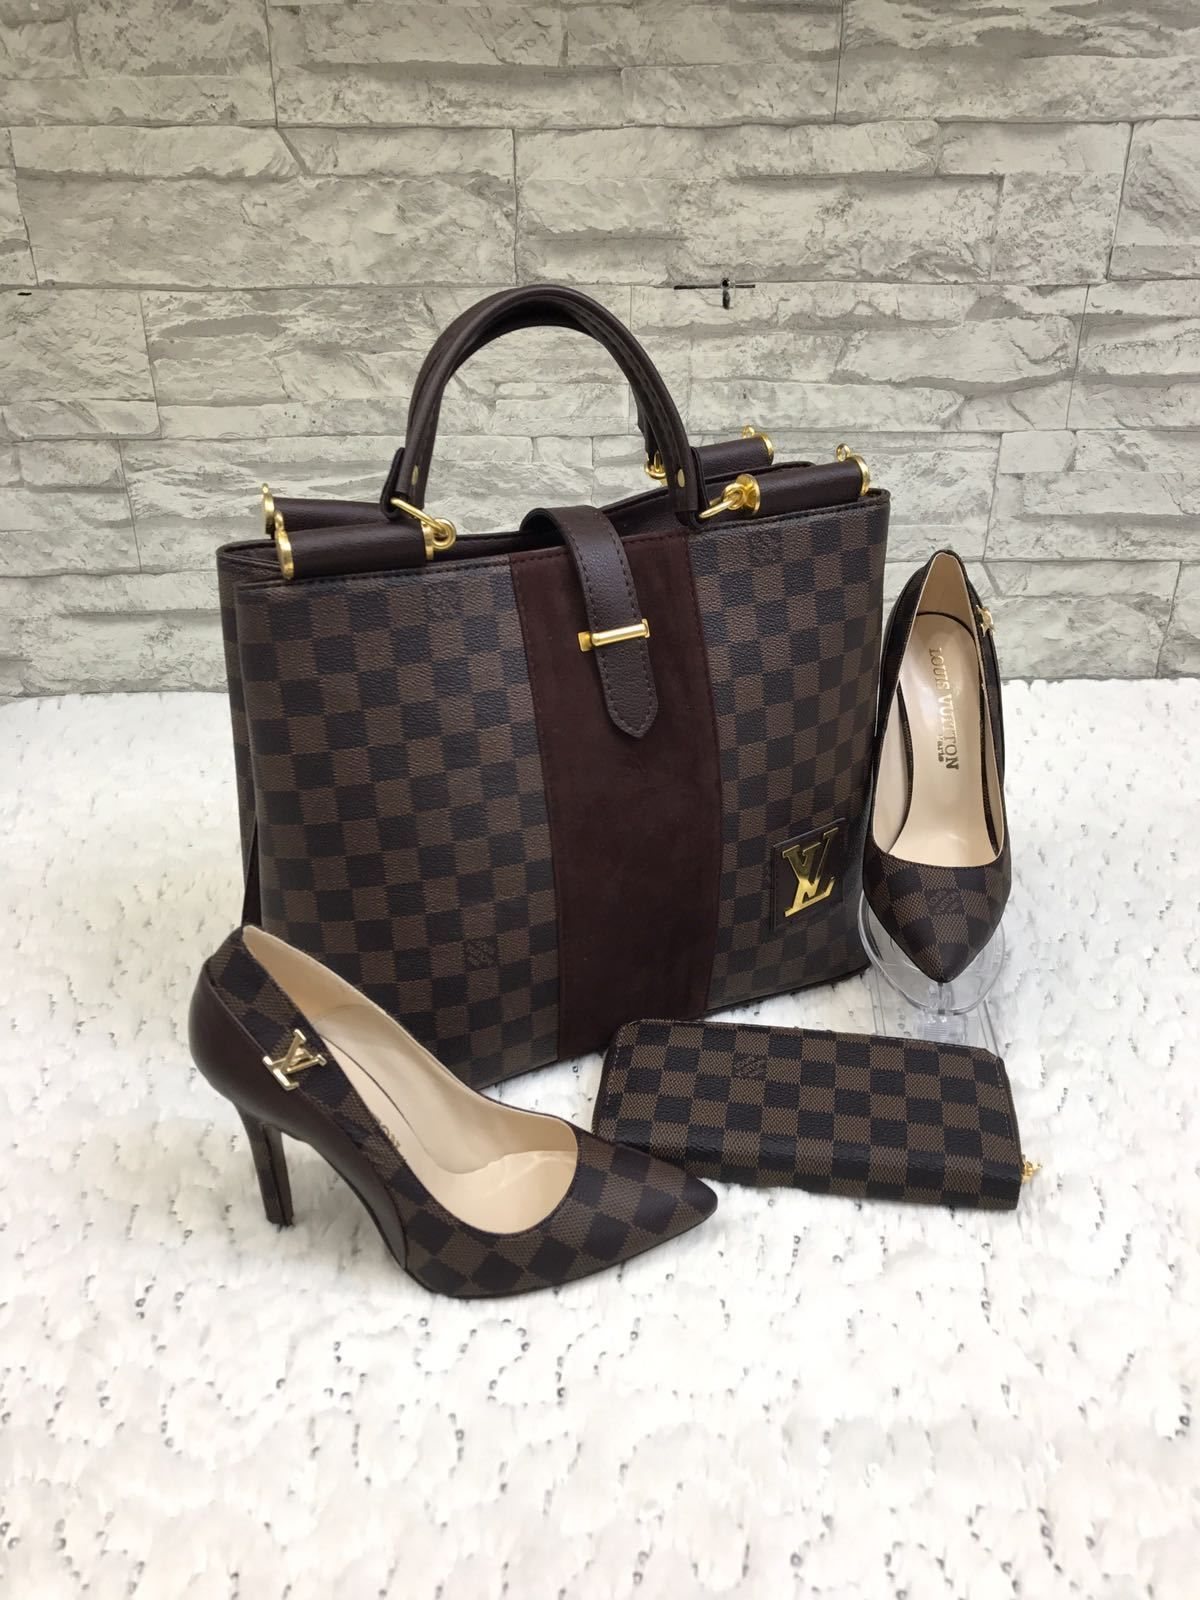 8101dd199555 Free shipping 3 pieces Louis Vuitton damier handbag shoes and wallet high-quality  replica Faux Leather comes in a transparent nylon bag and white box for ...